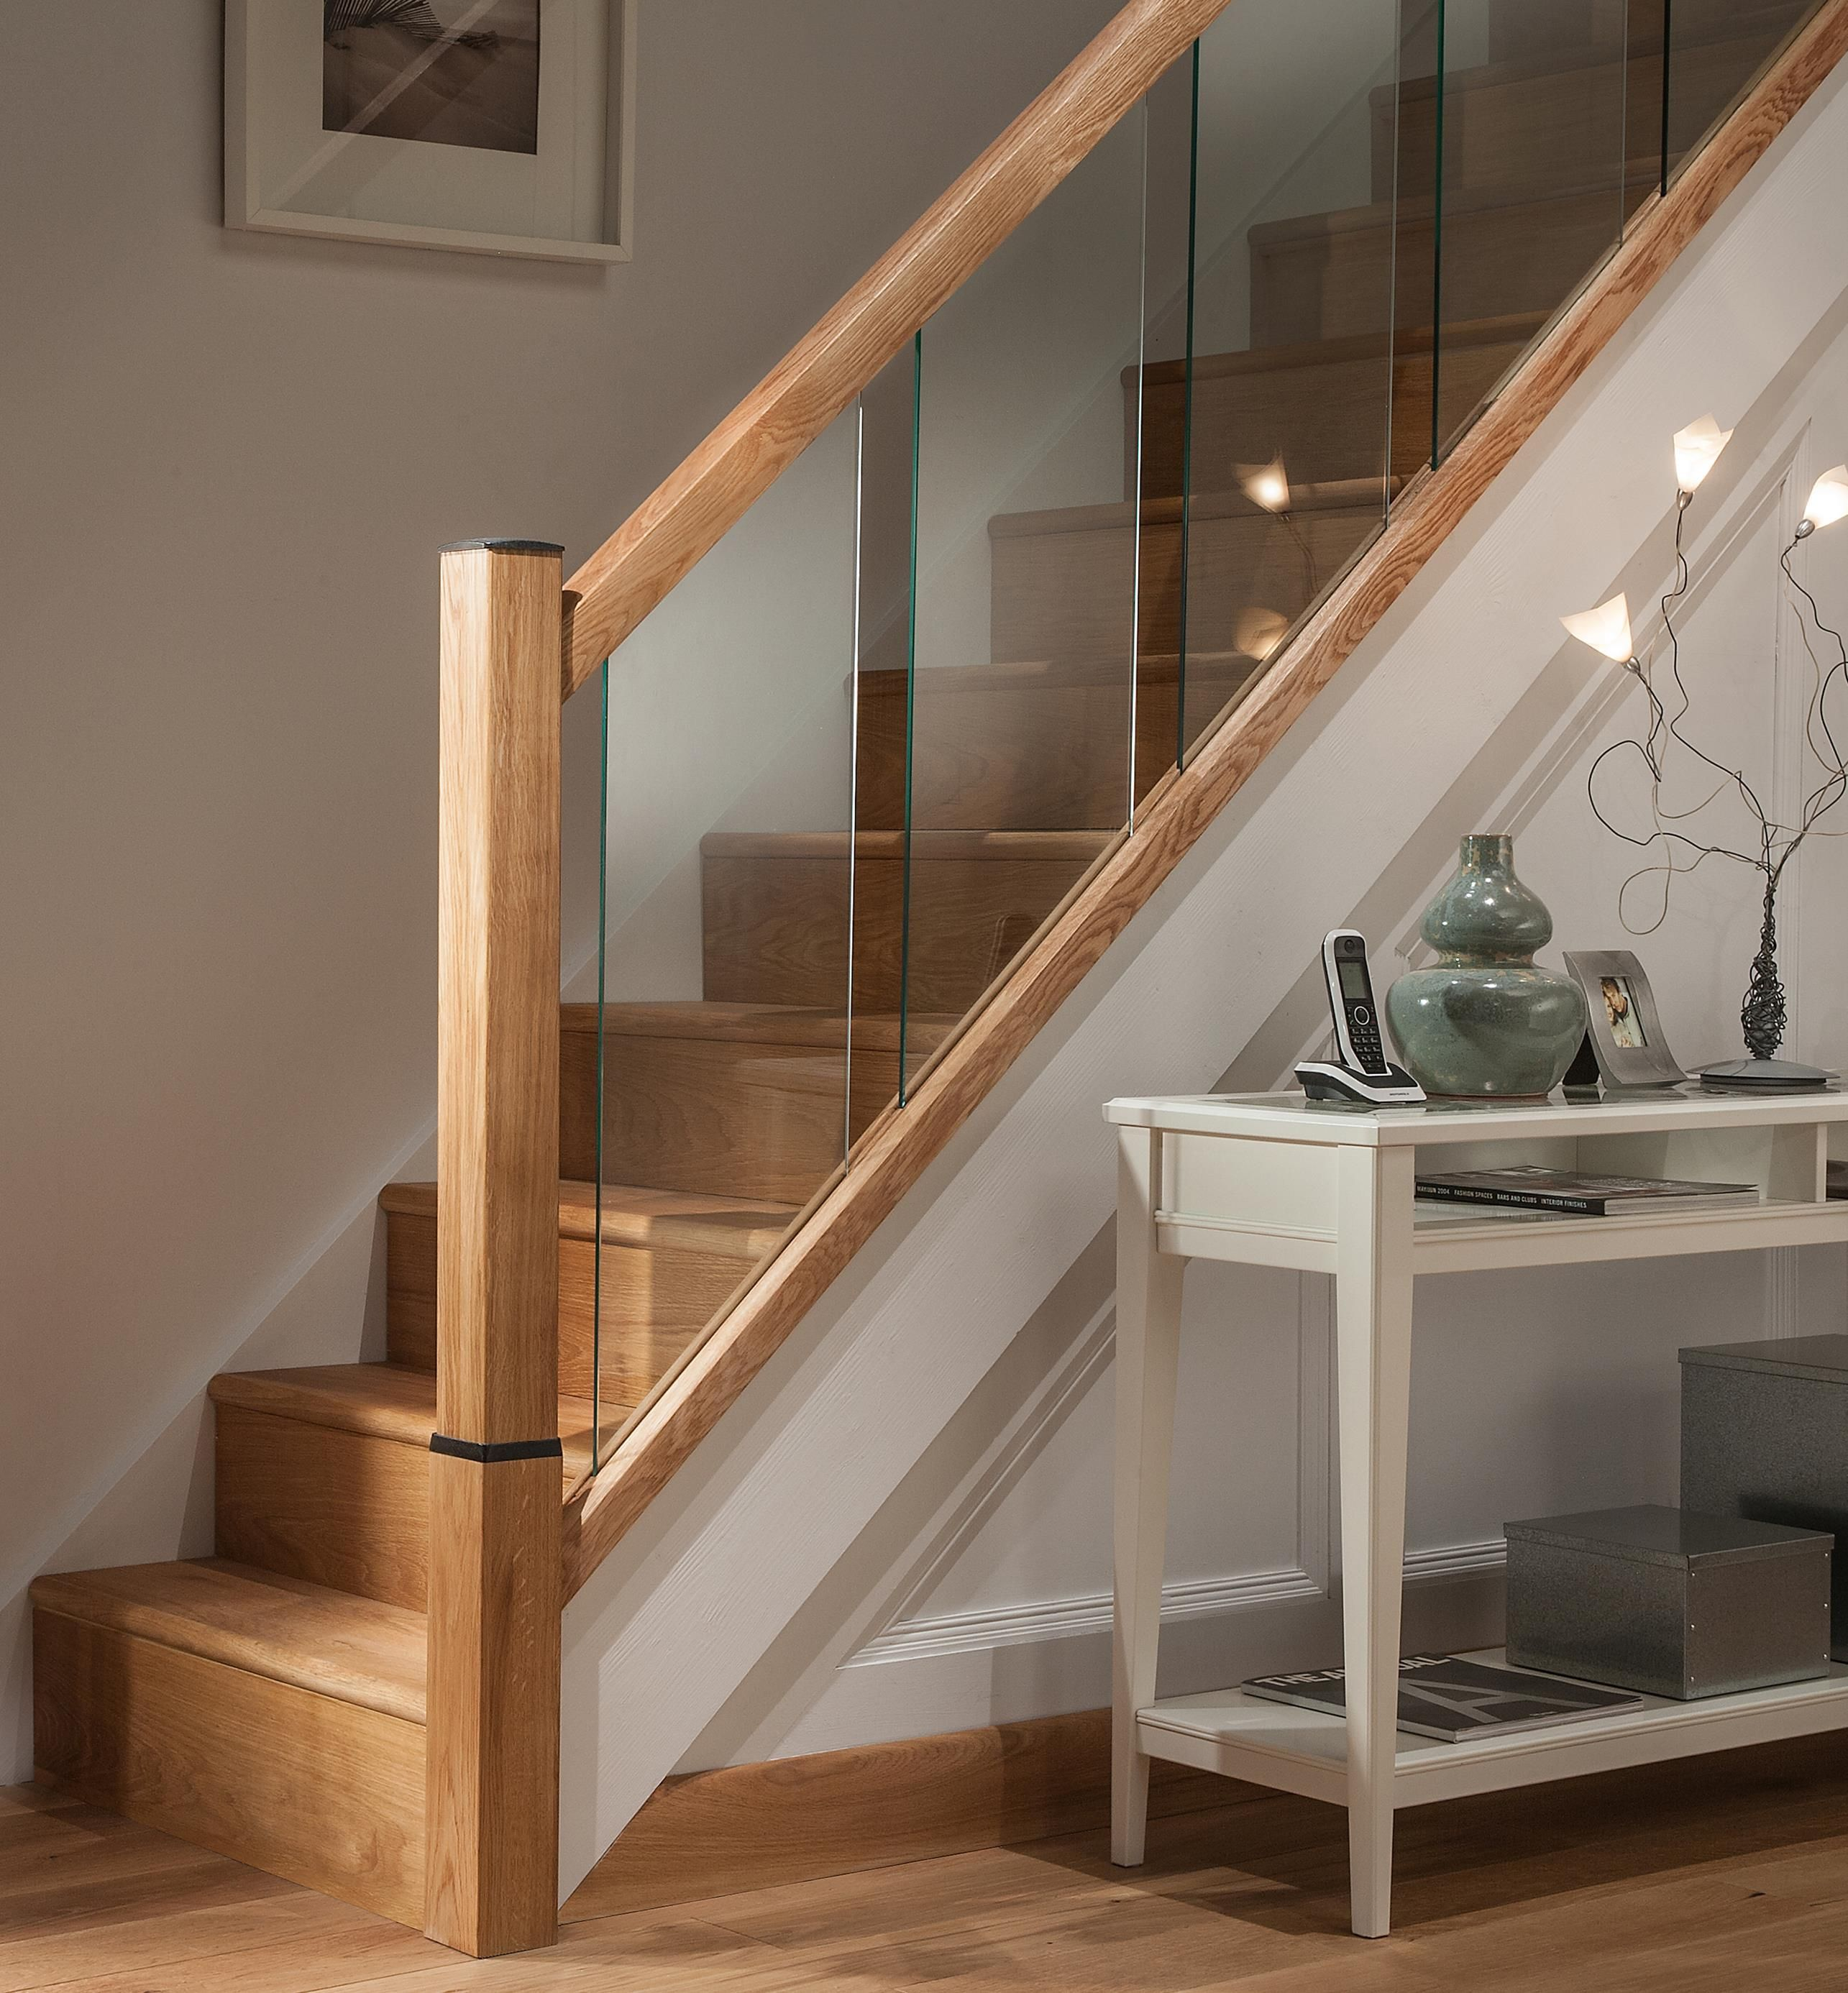 Charming Reflections Glass Balustrade Is A Range Of Interior Staircase Products That  Make It Simple And Easy